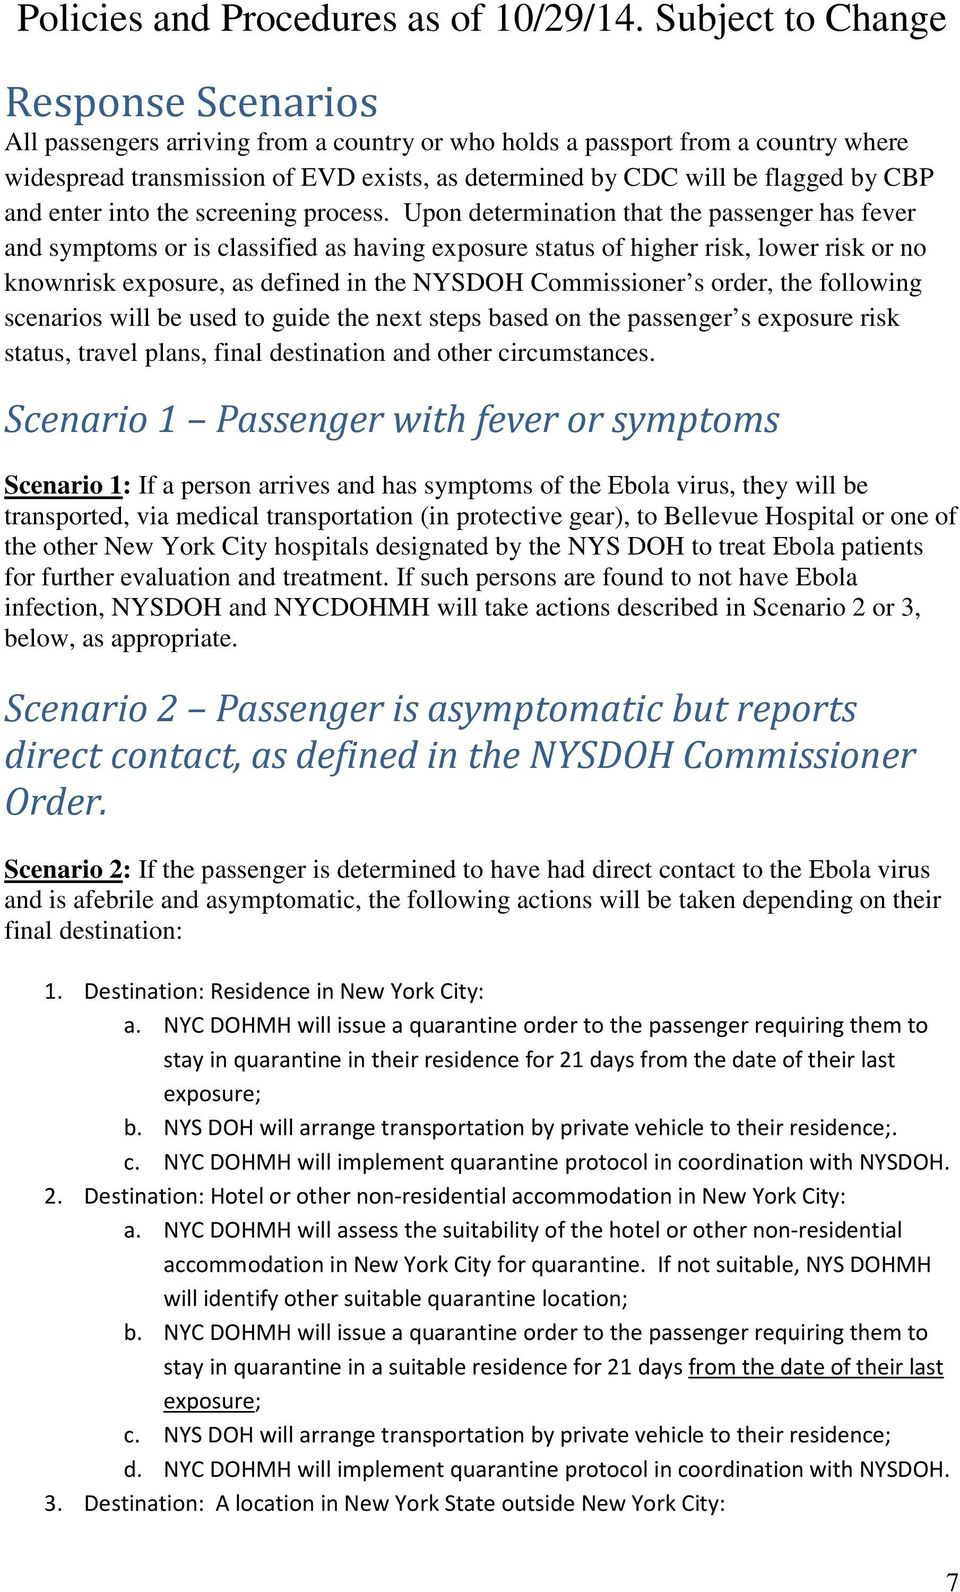 Upon determination that the passenger has fever and symptoms or is classified as having exposure status of higher risk, lower risk or no knownrisk exposure, as defined in the NYSDOH Commissioner s